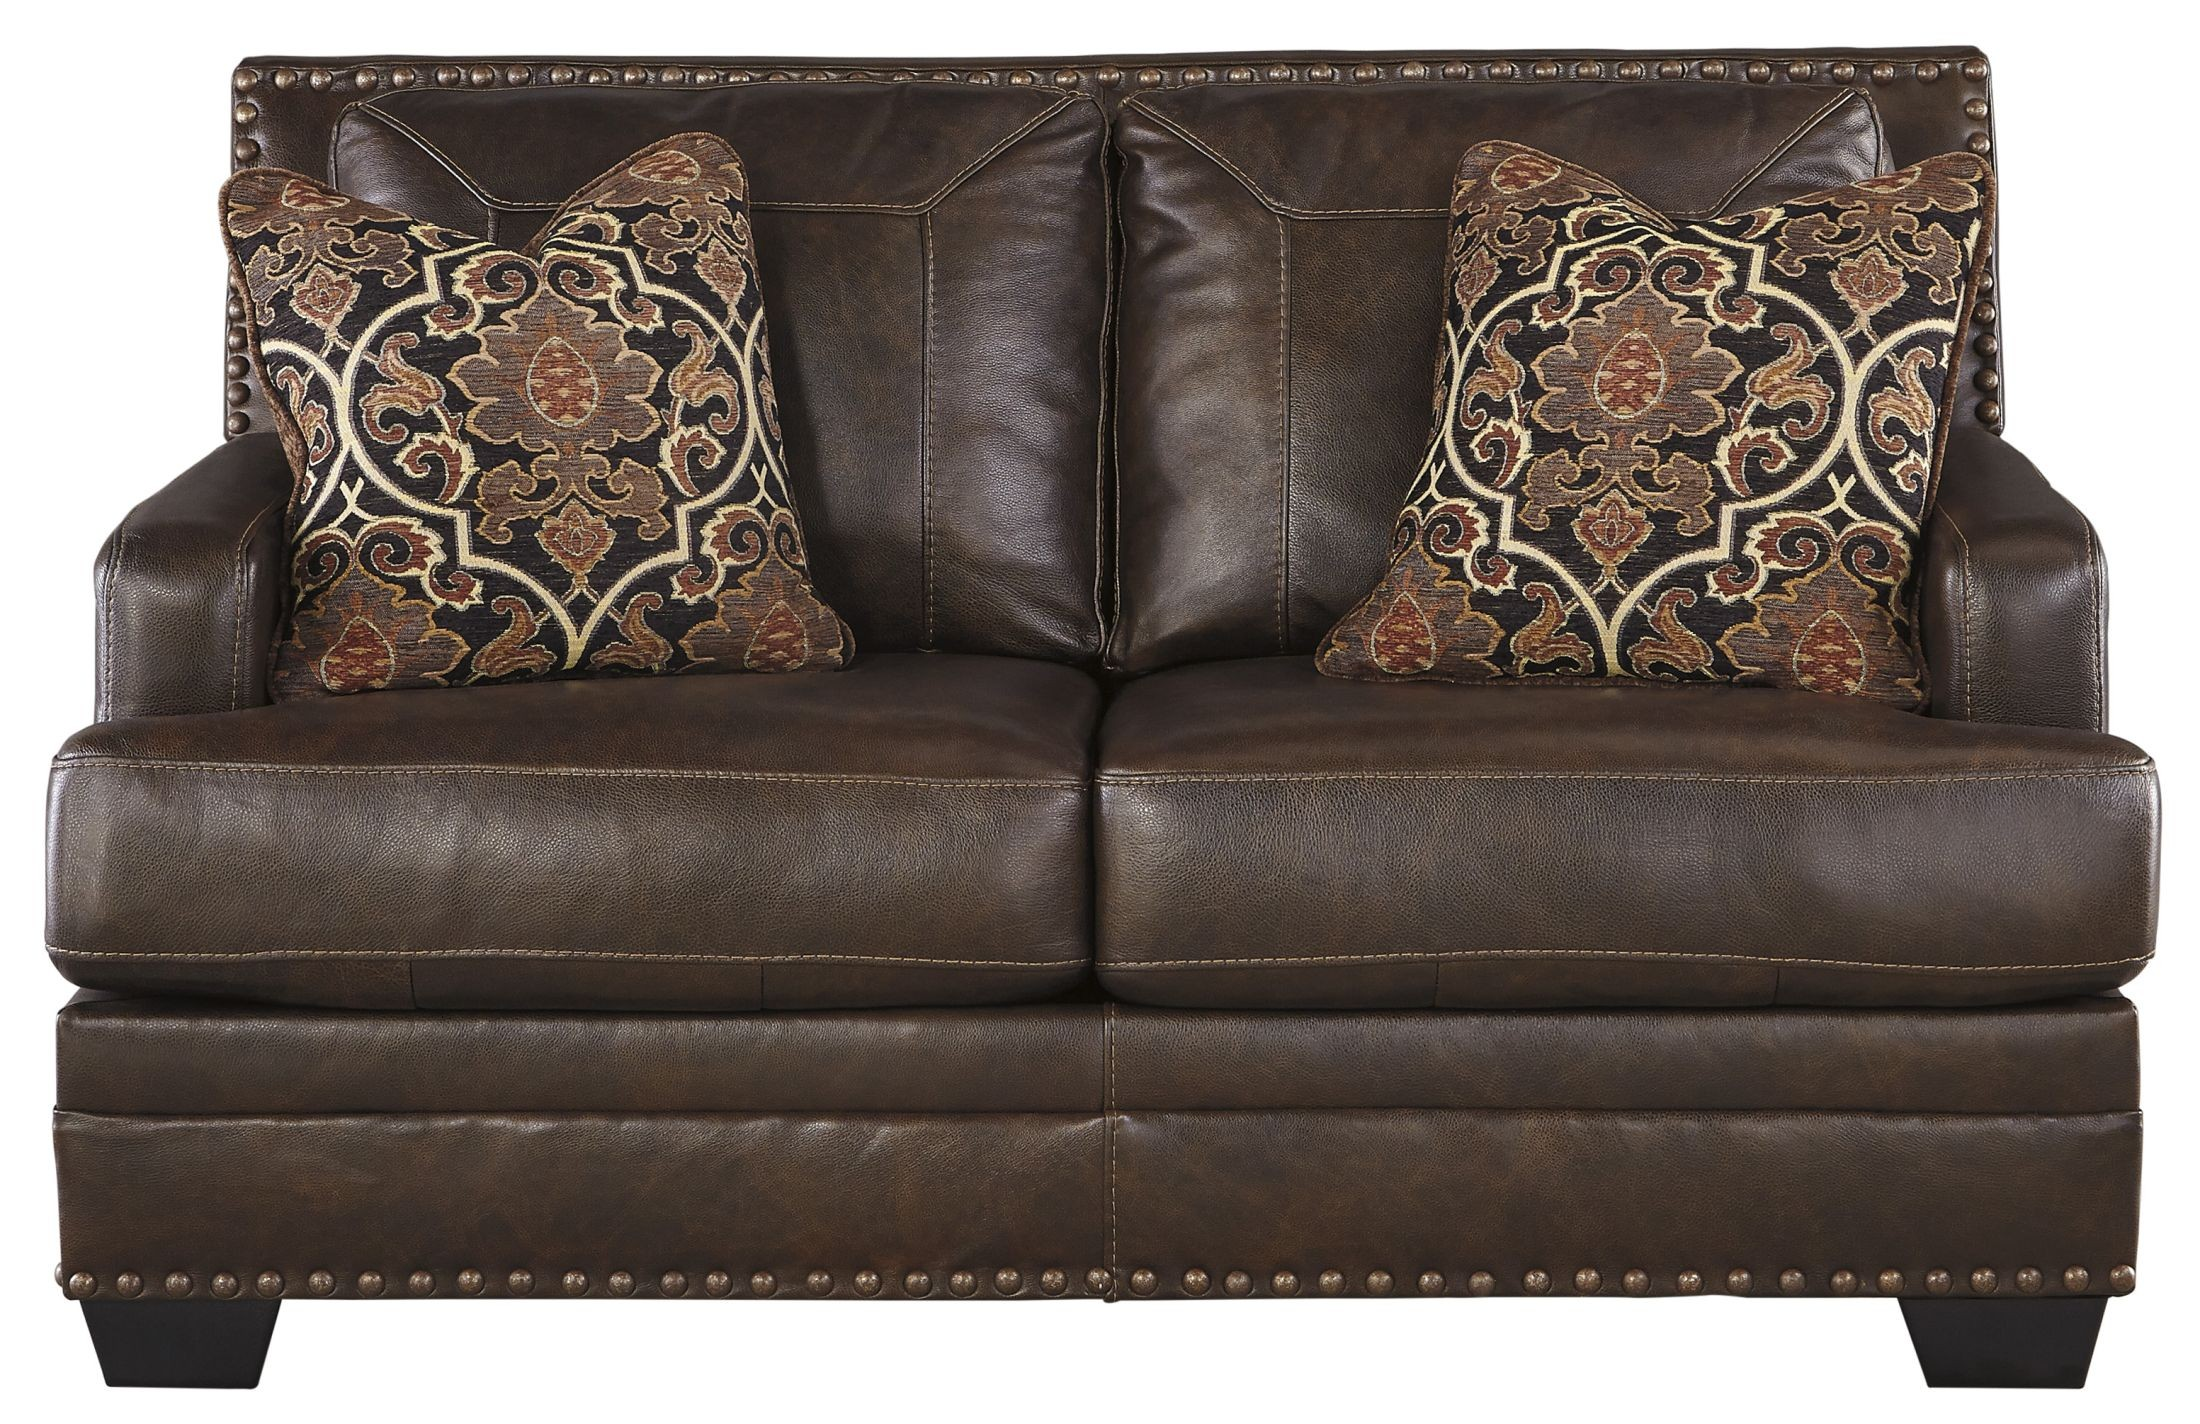 Corvan Antique Loveseat From Ashley 6910335 Coleman Furniture